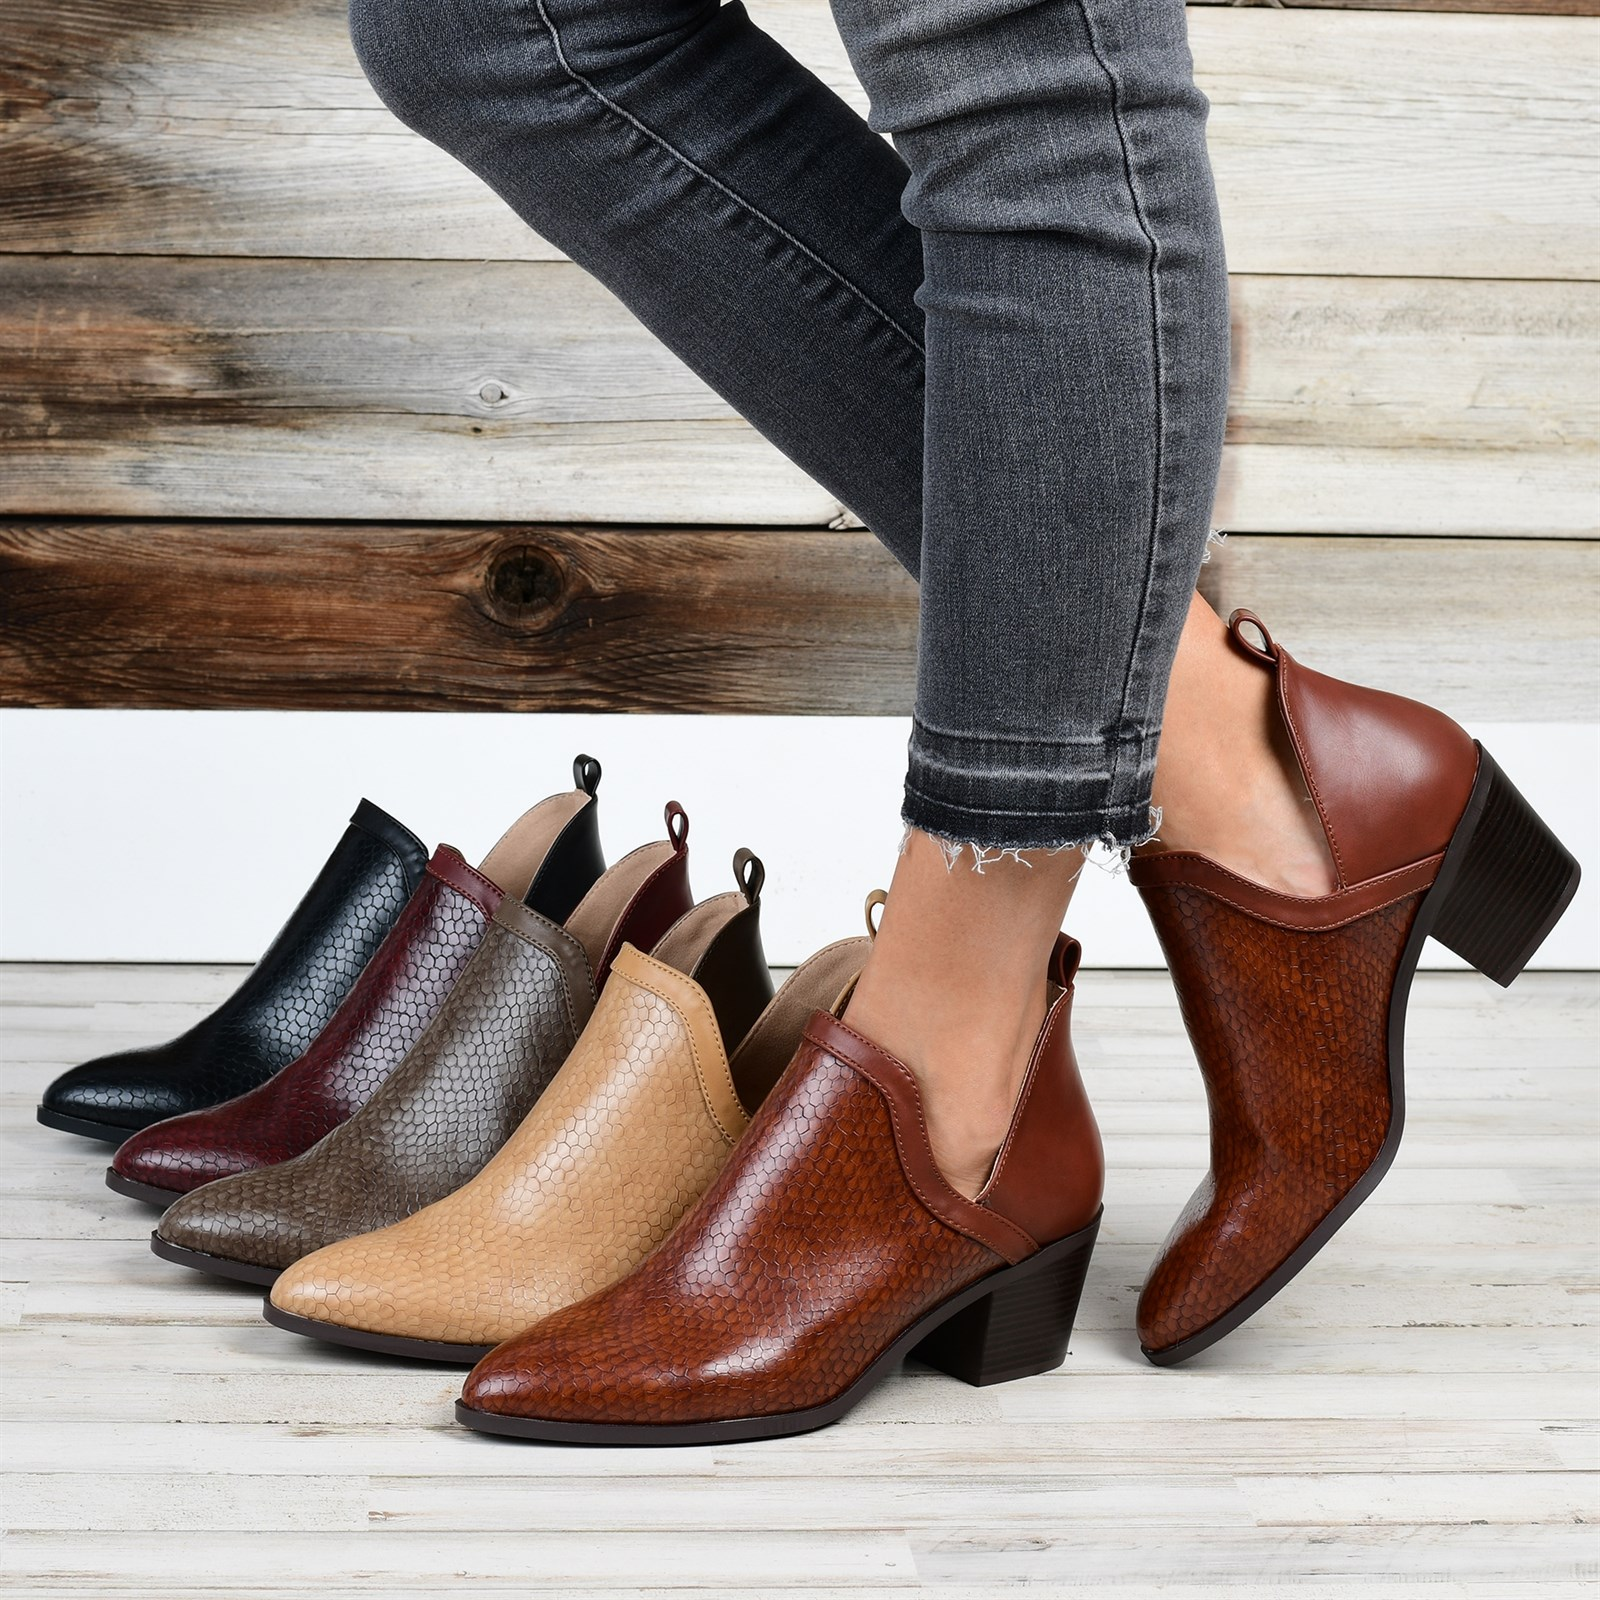 Textured Ankle Bootie Only $38.99 w/ Free Shipping